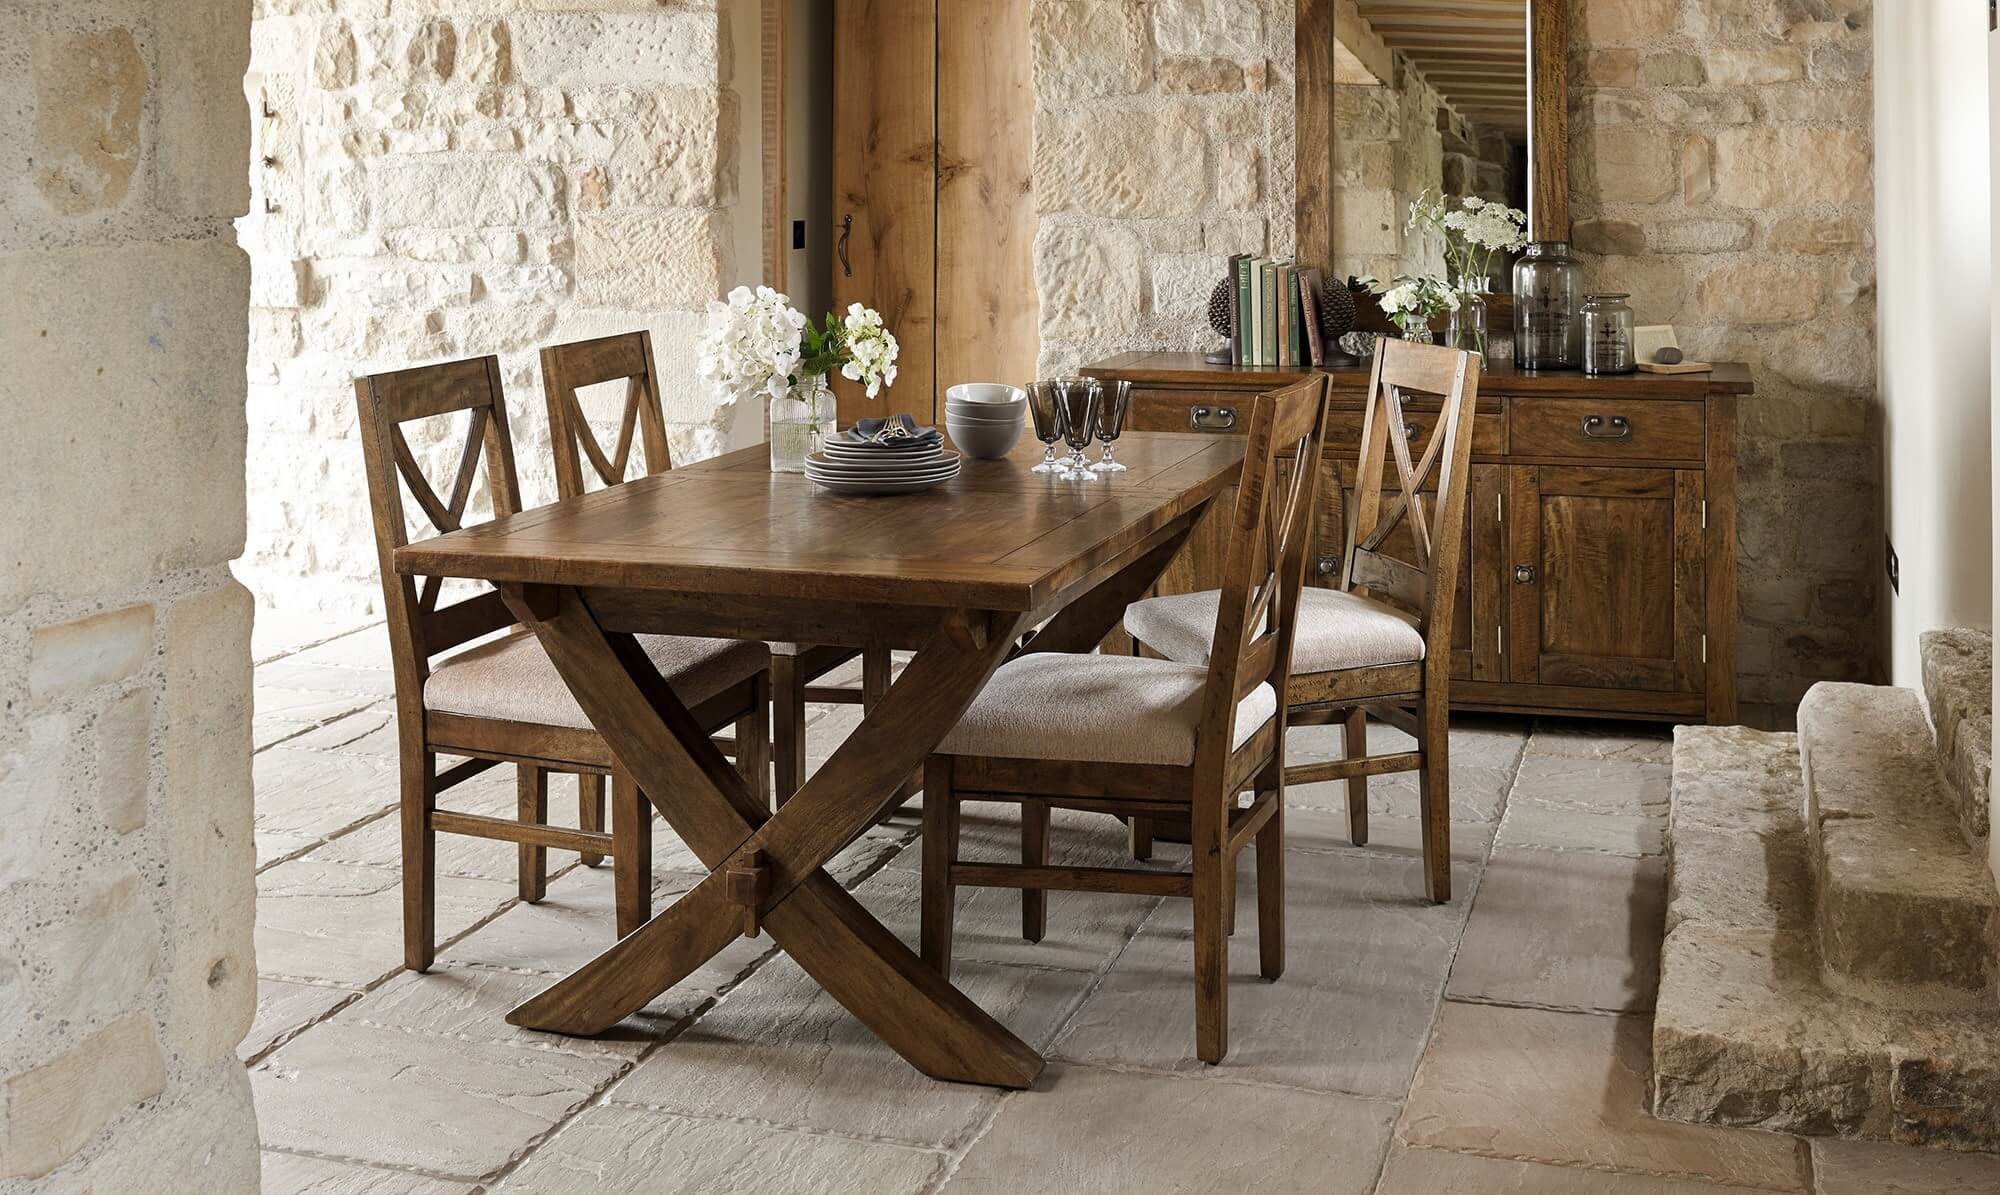 Timor dining table - Fishpools